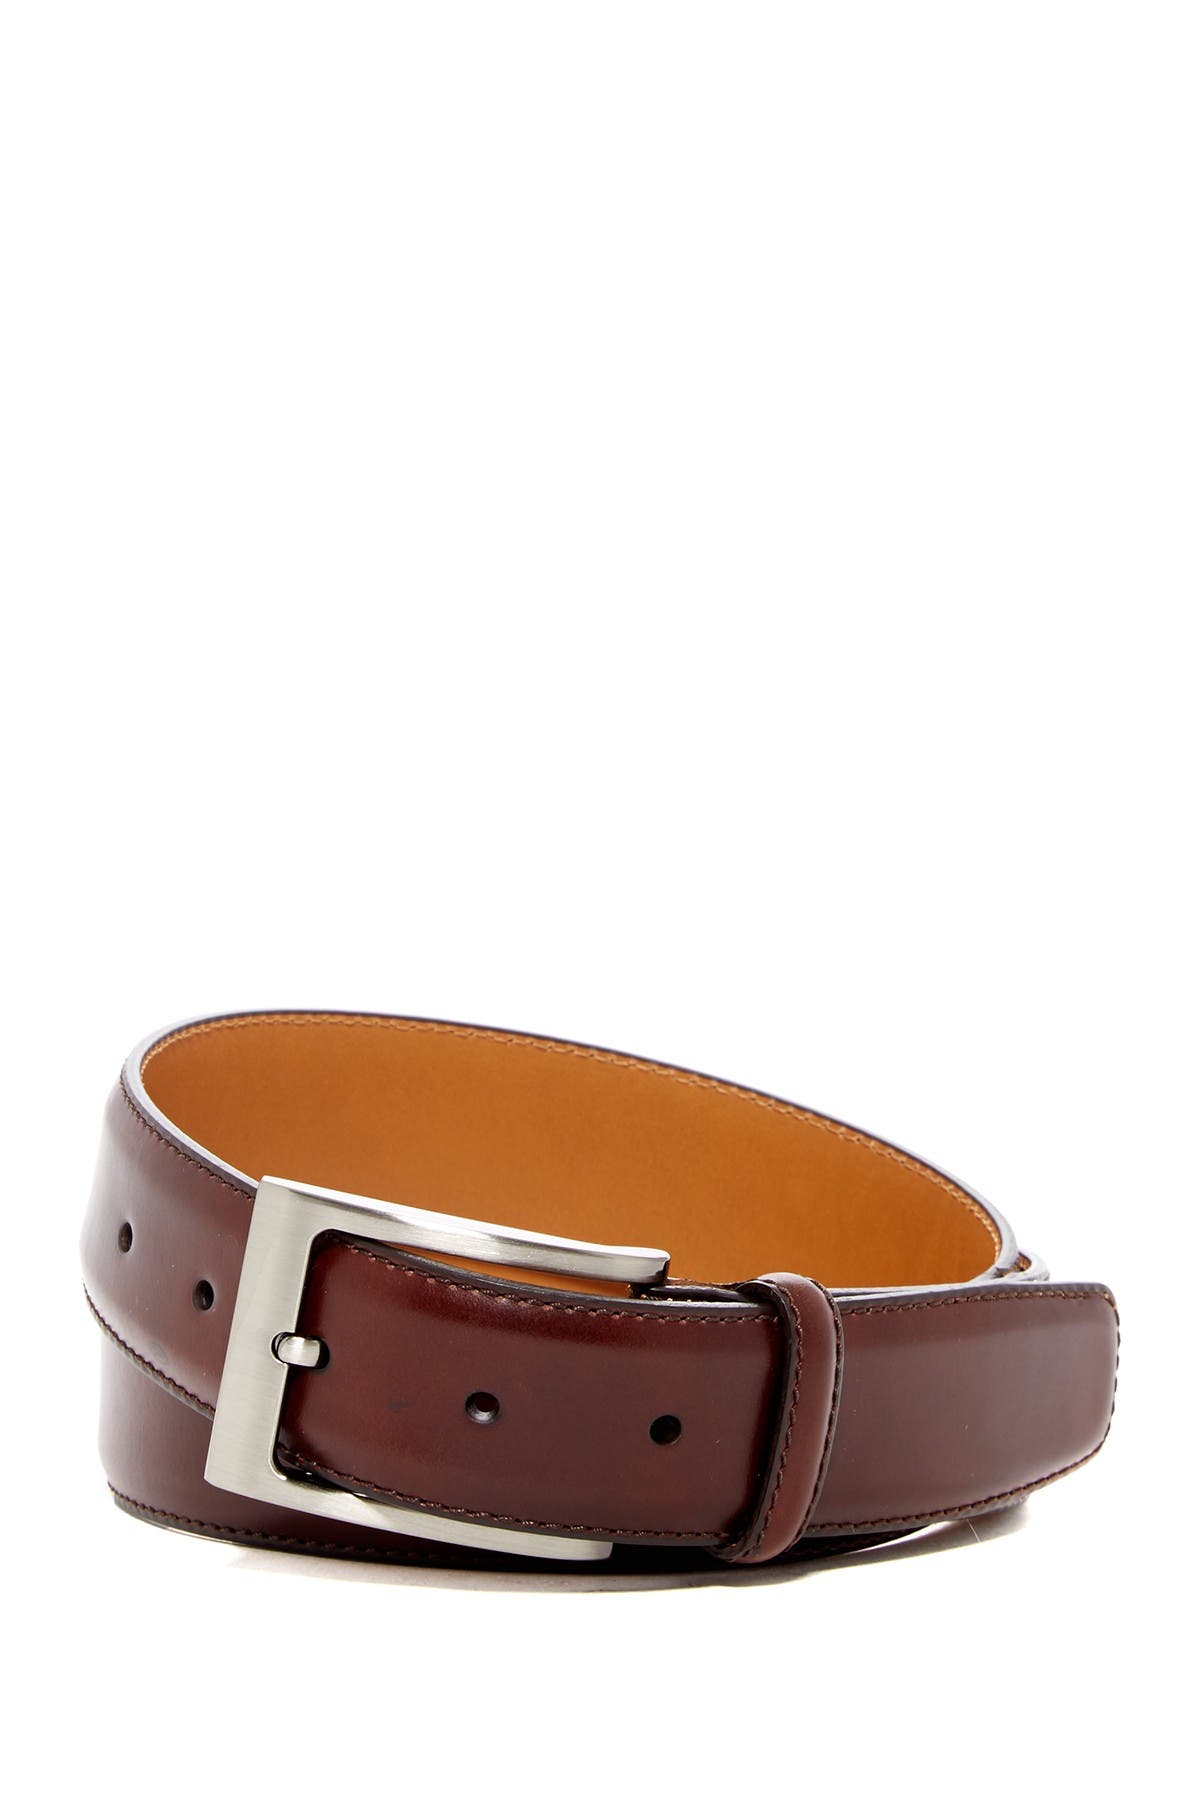 Image of Magnanni Square Buckle Leather Belt